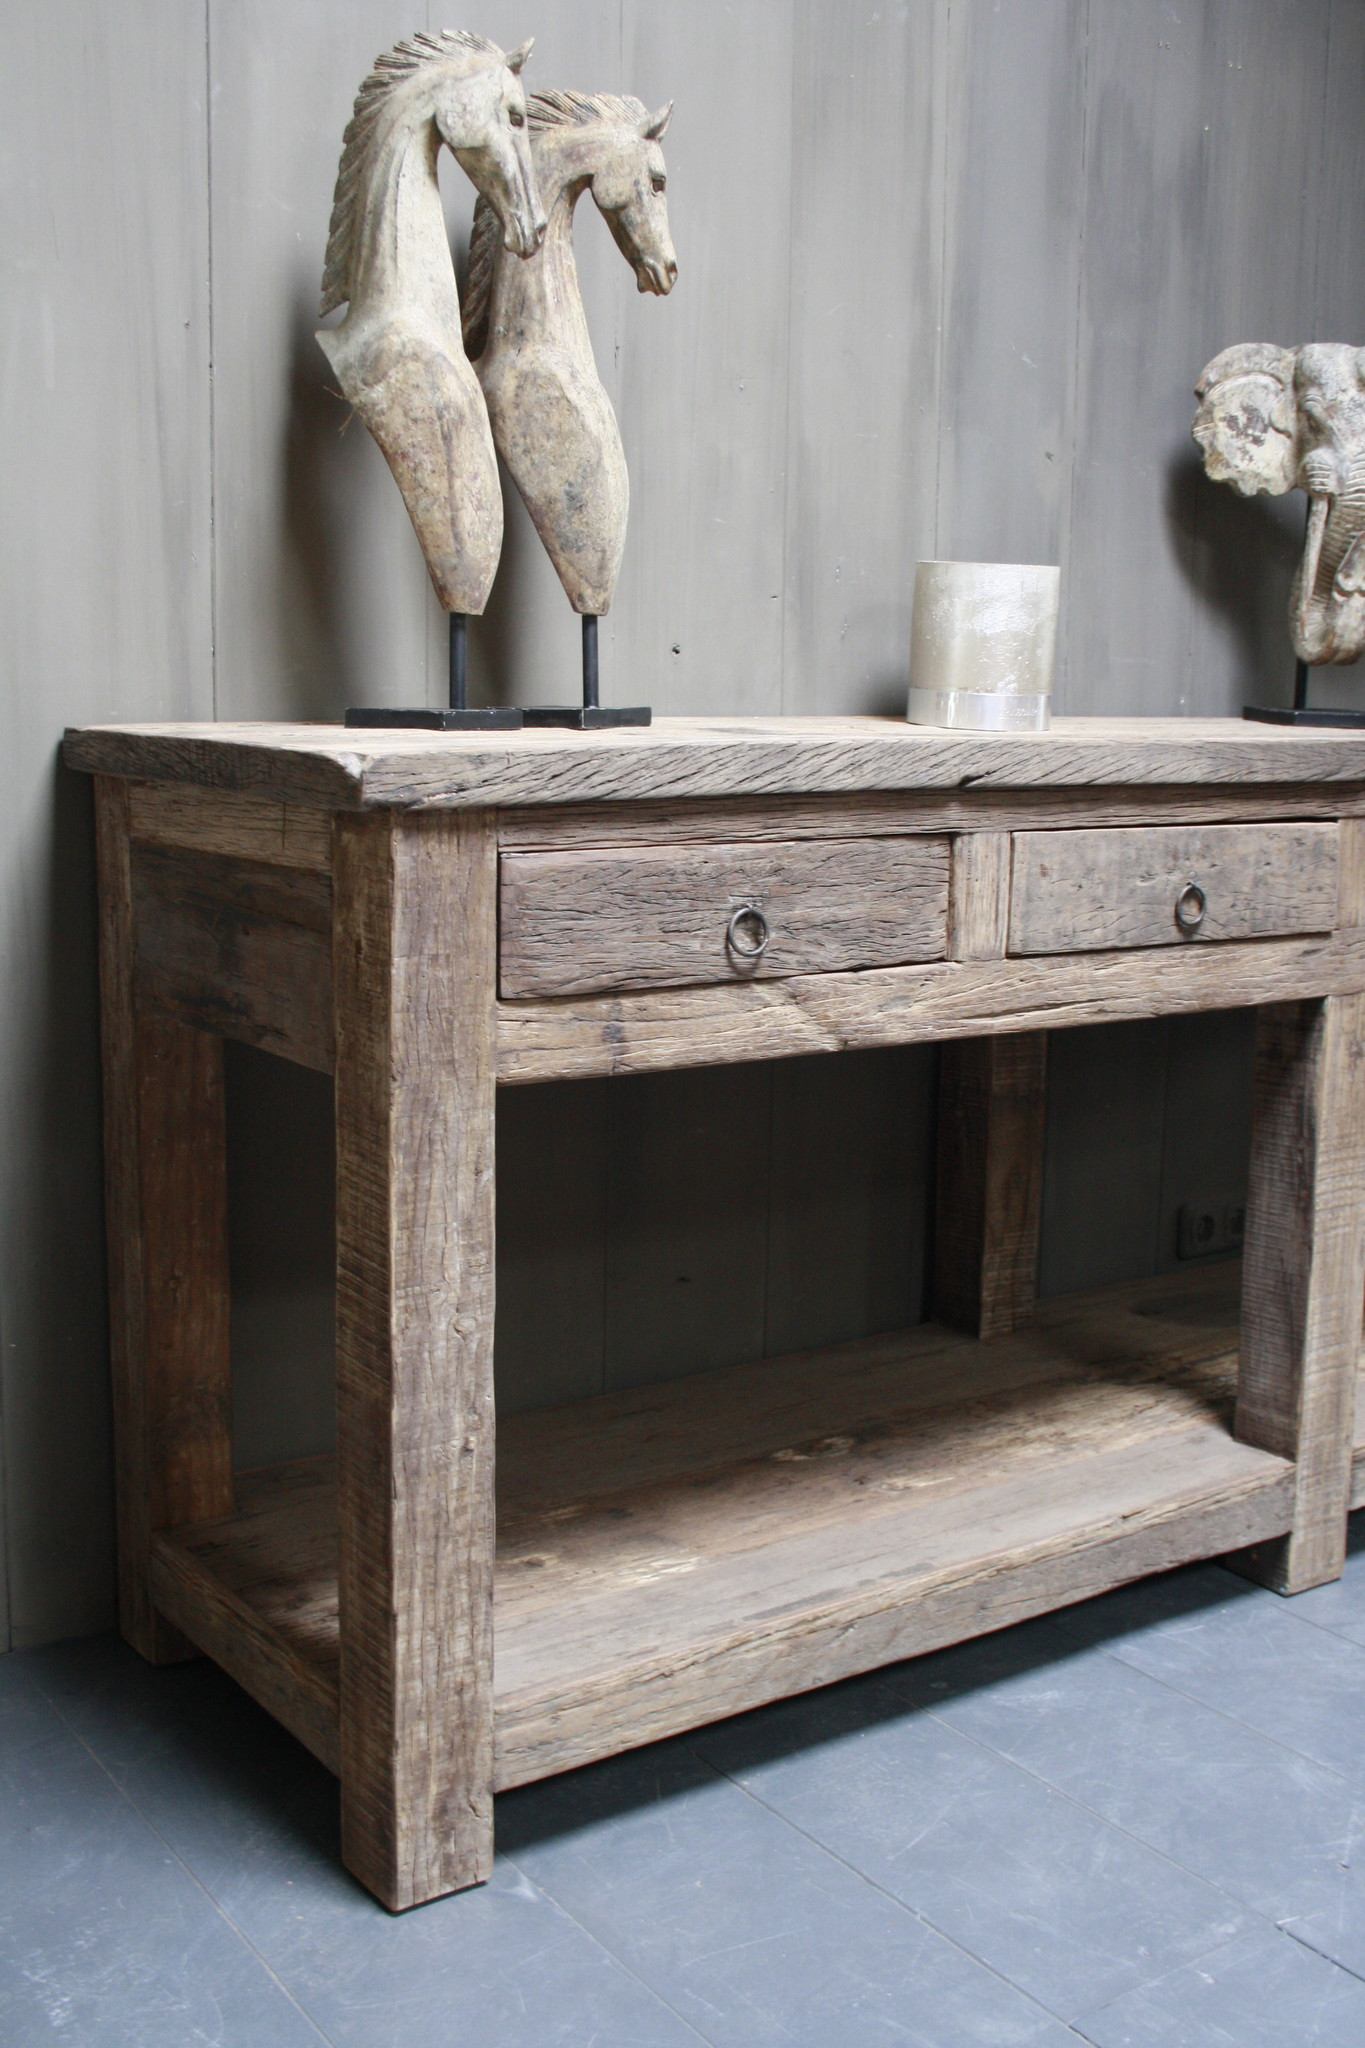 Sidetable Bassano oud hout met lades 226 x 60 x 90-2